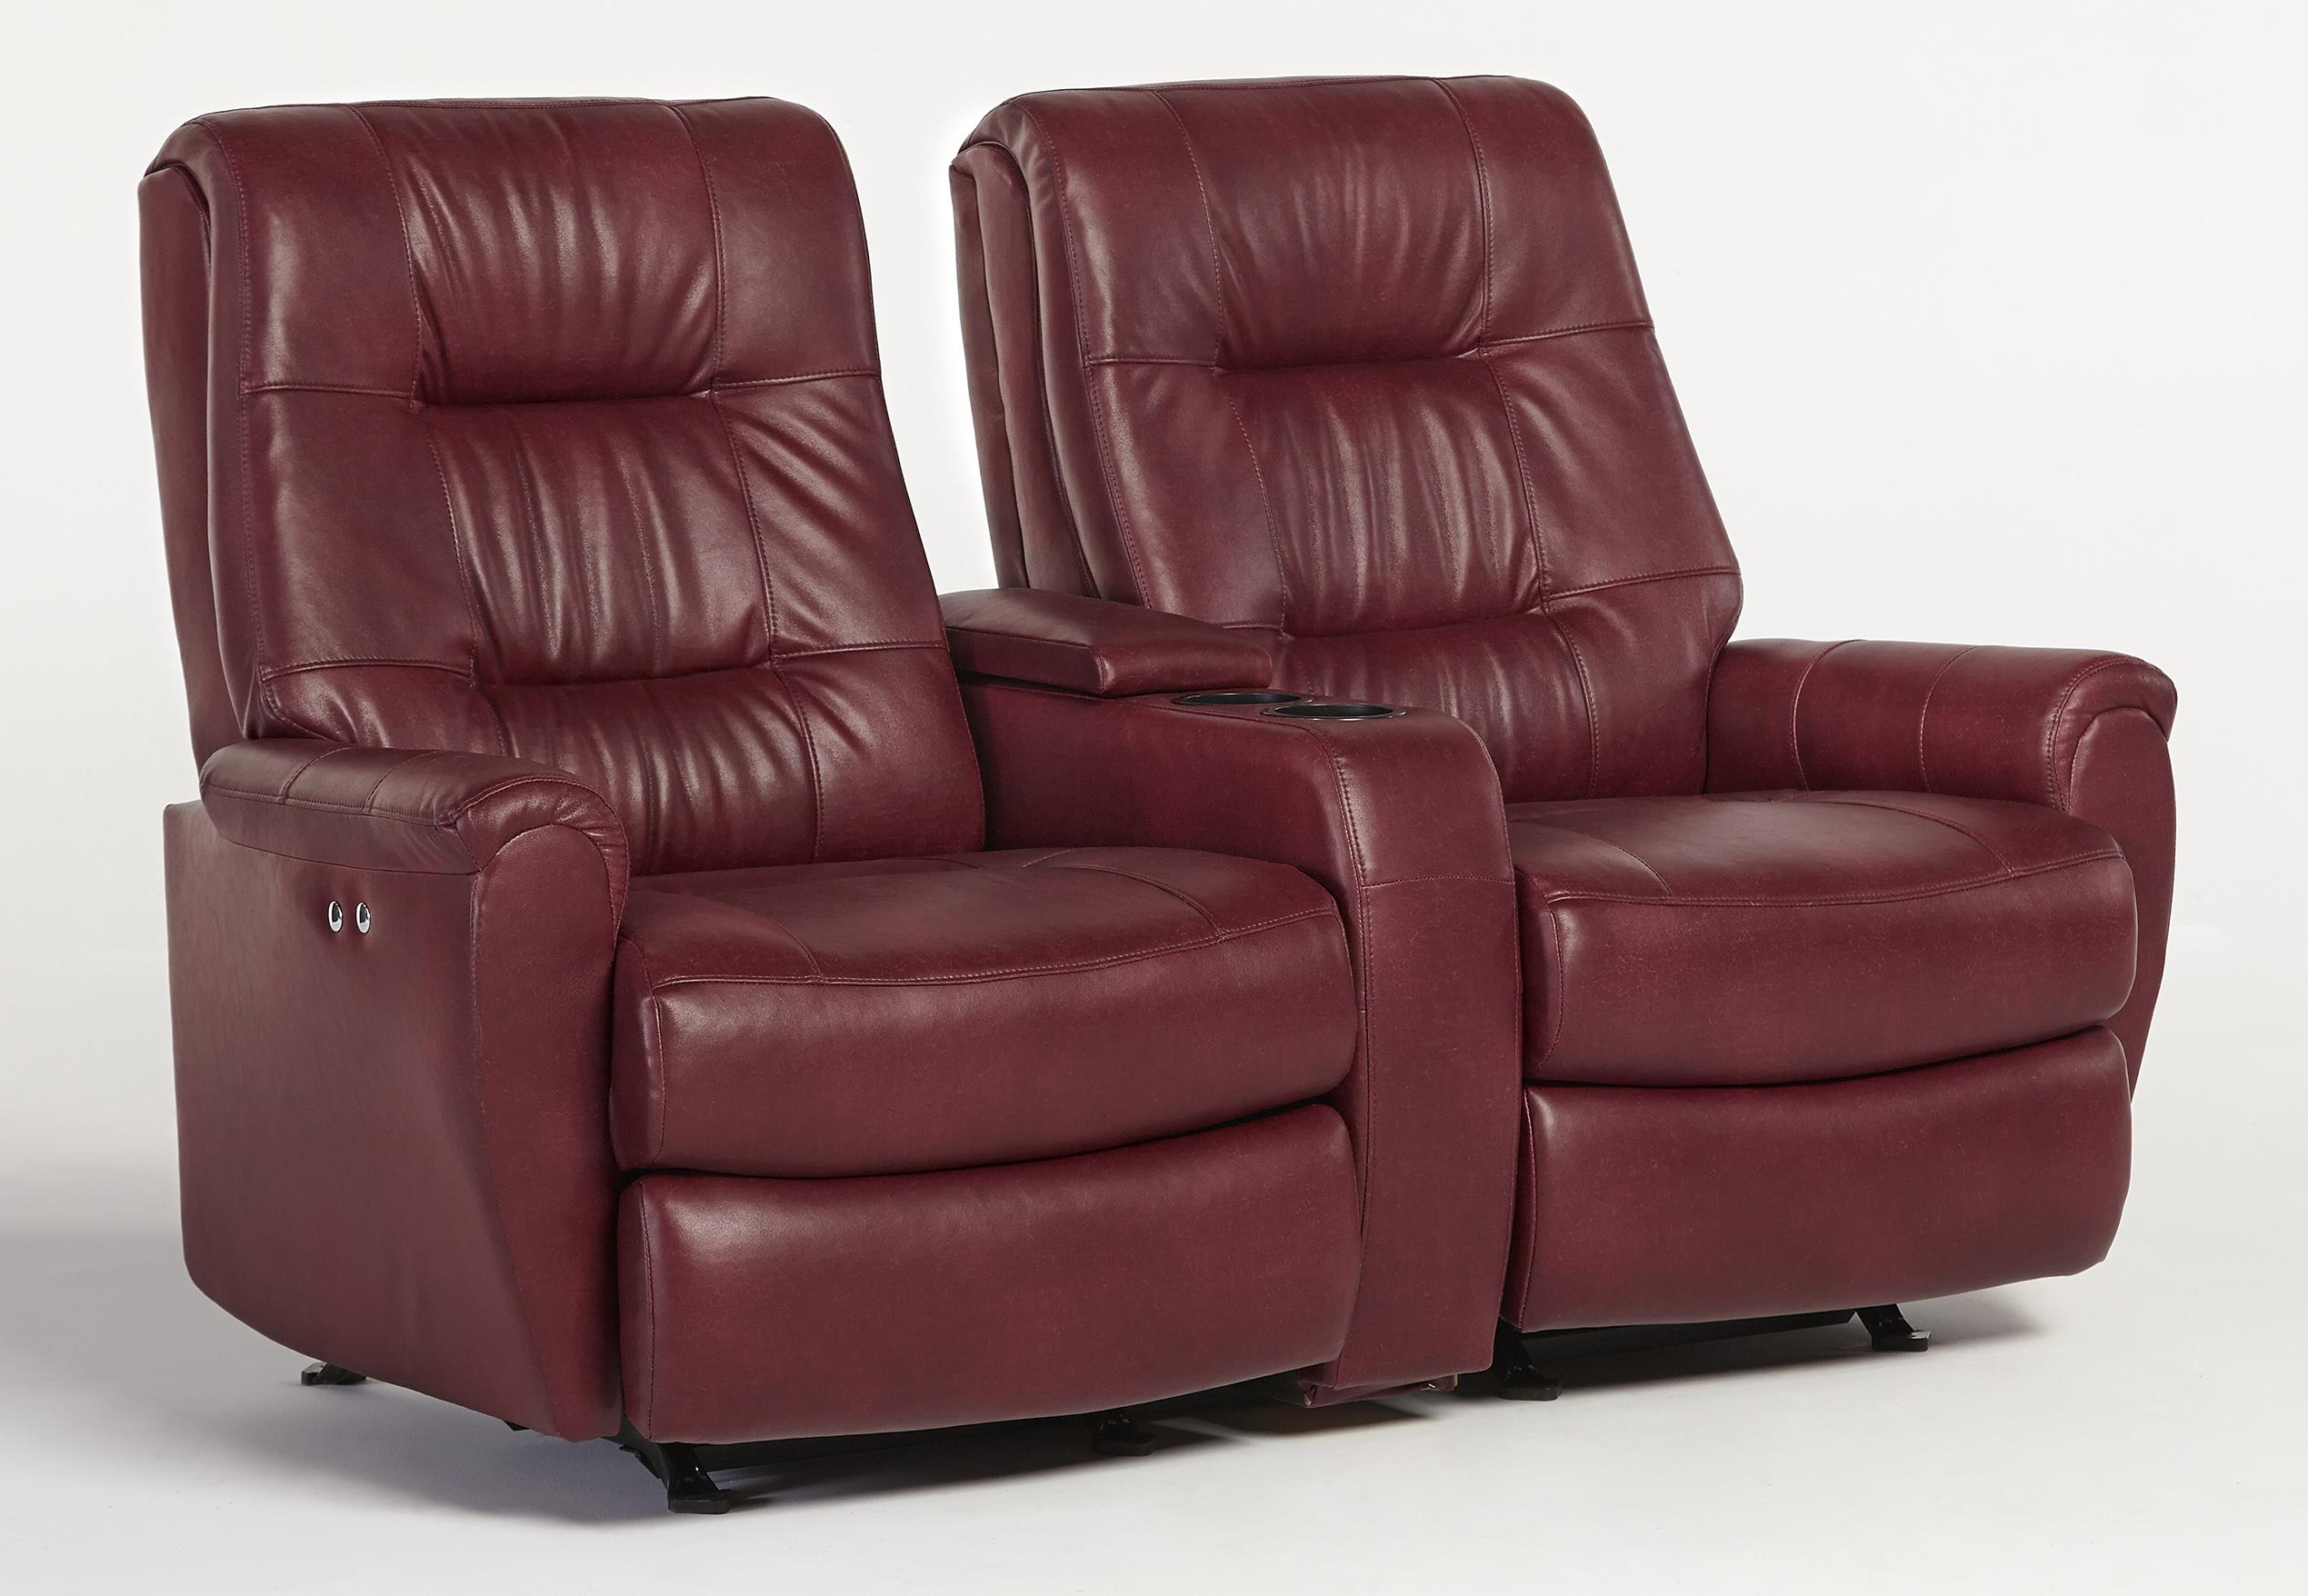 Small Scale Power Rocking Reclining Loveseat With Drink And Storage Console By Best Home